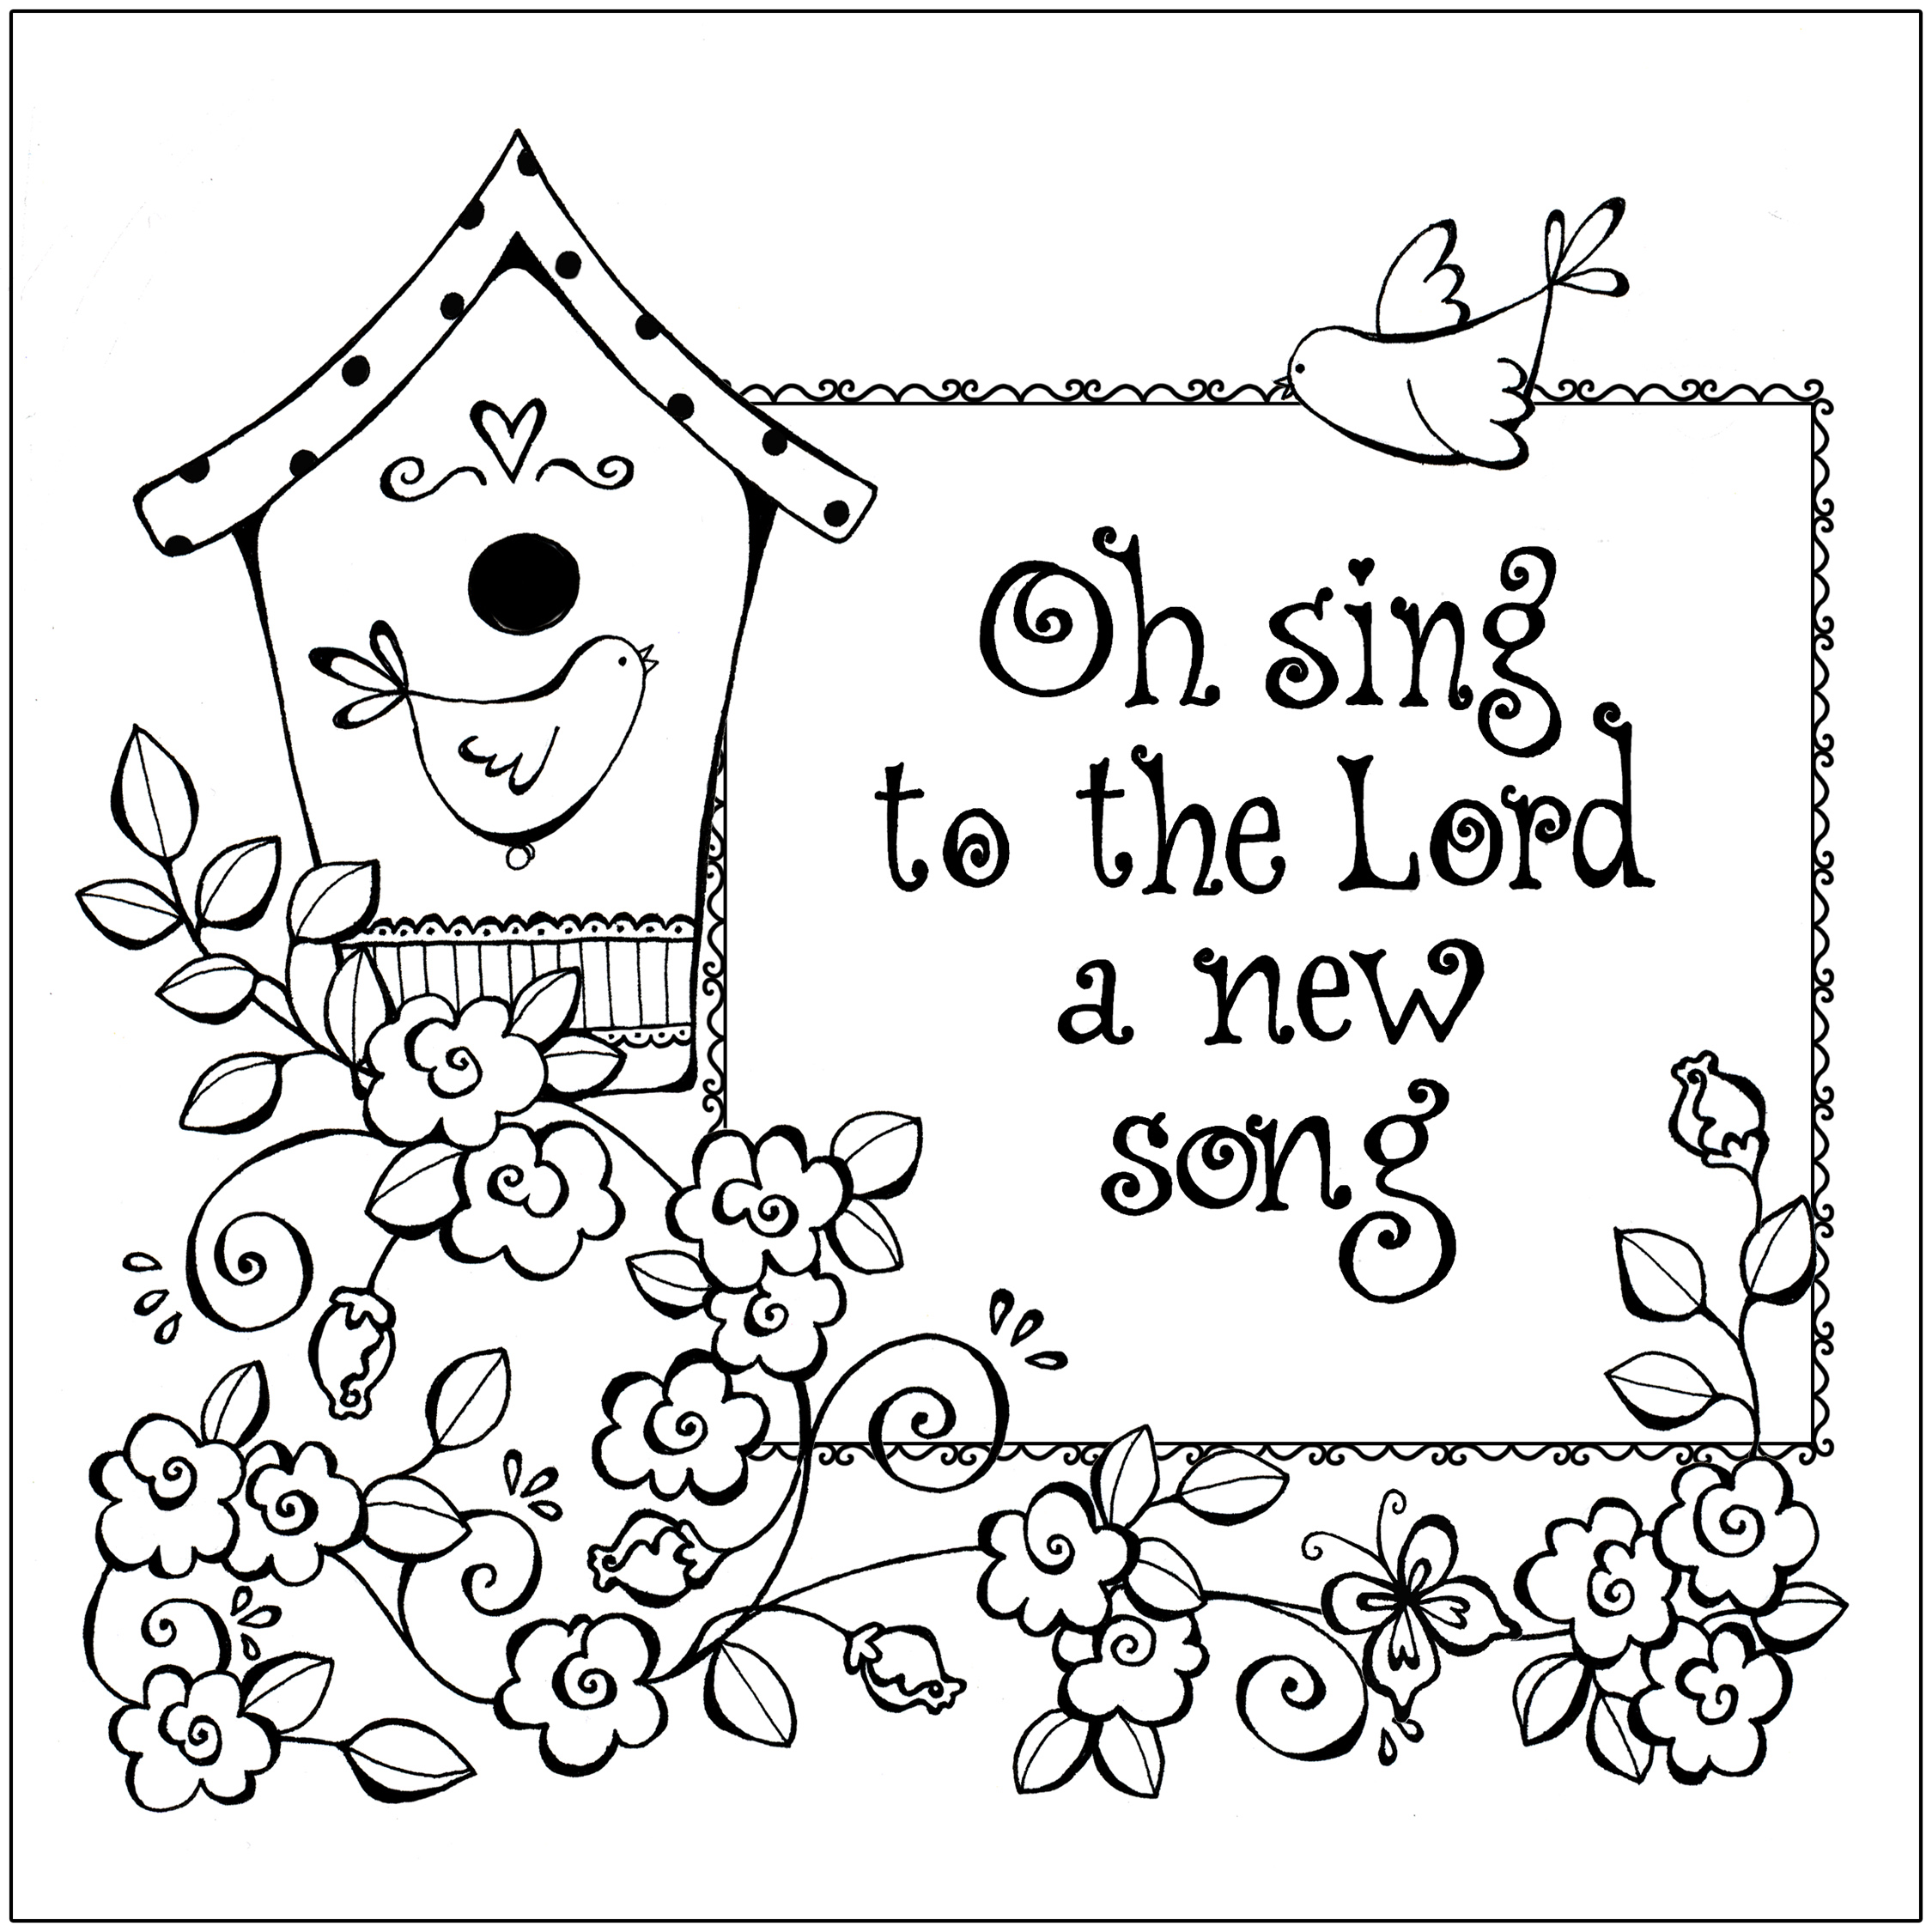 christian youth coloring pages - photo#17